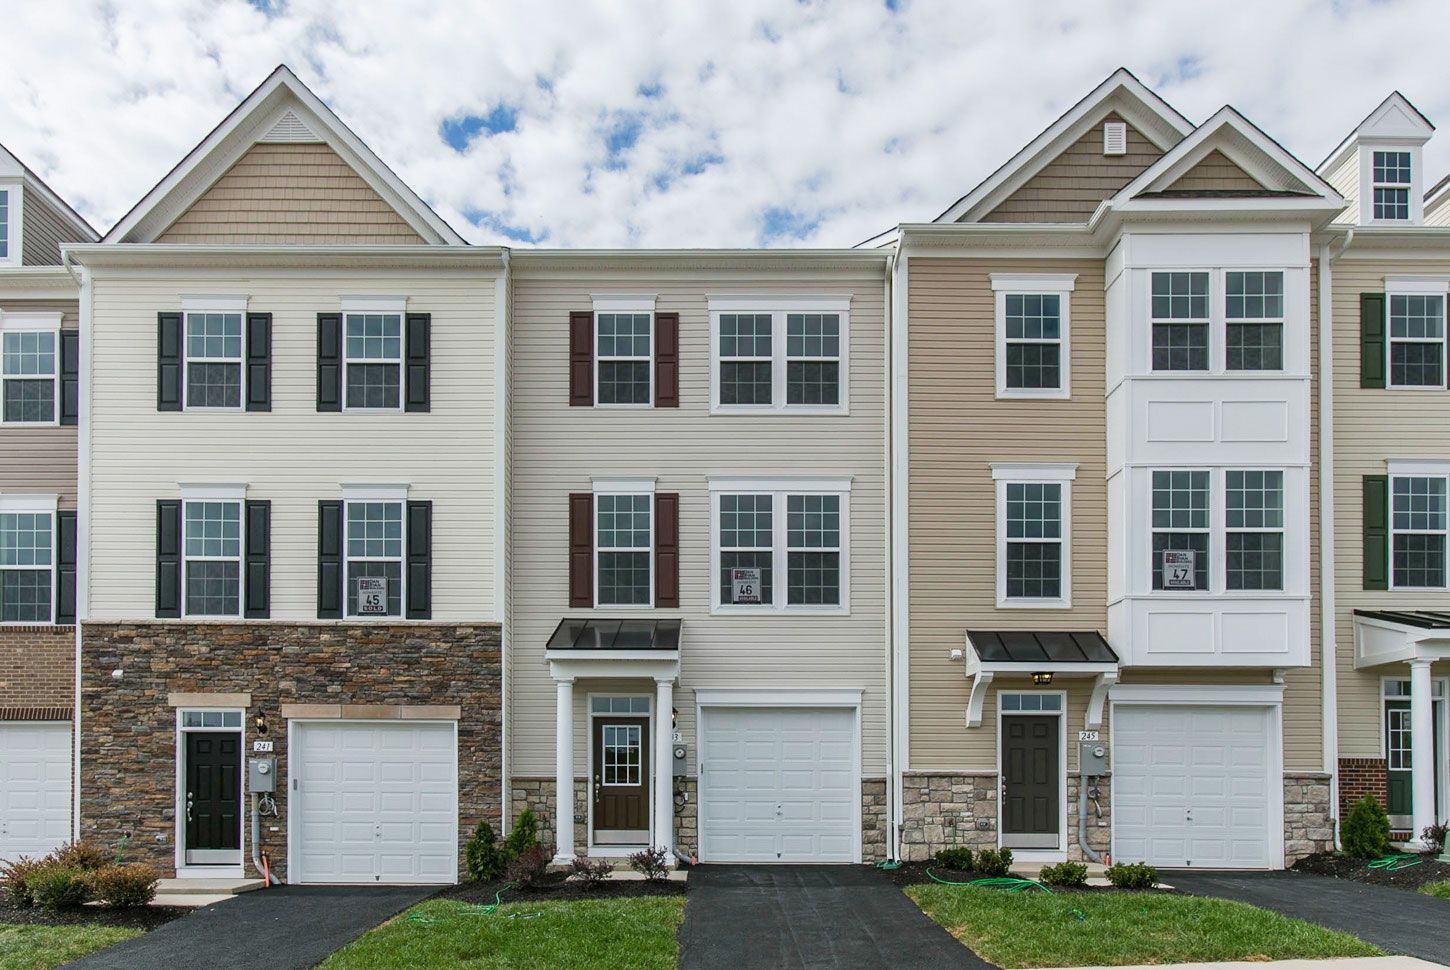 Single Family for Sale at The Townes At Tasker - Yorktown Ii 253 Schramm Loop Stephens City, Virginia 22655 United States